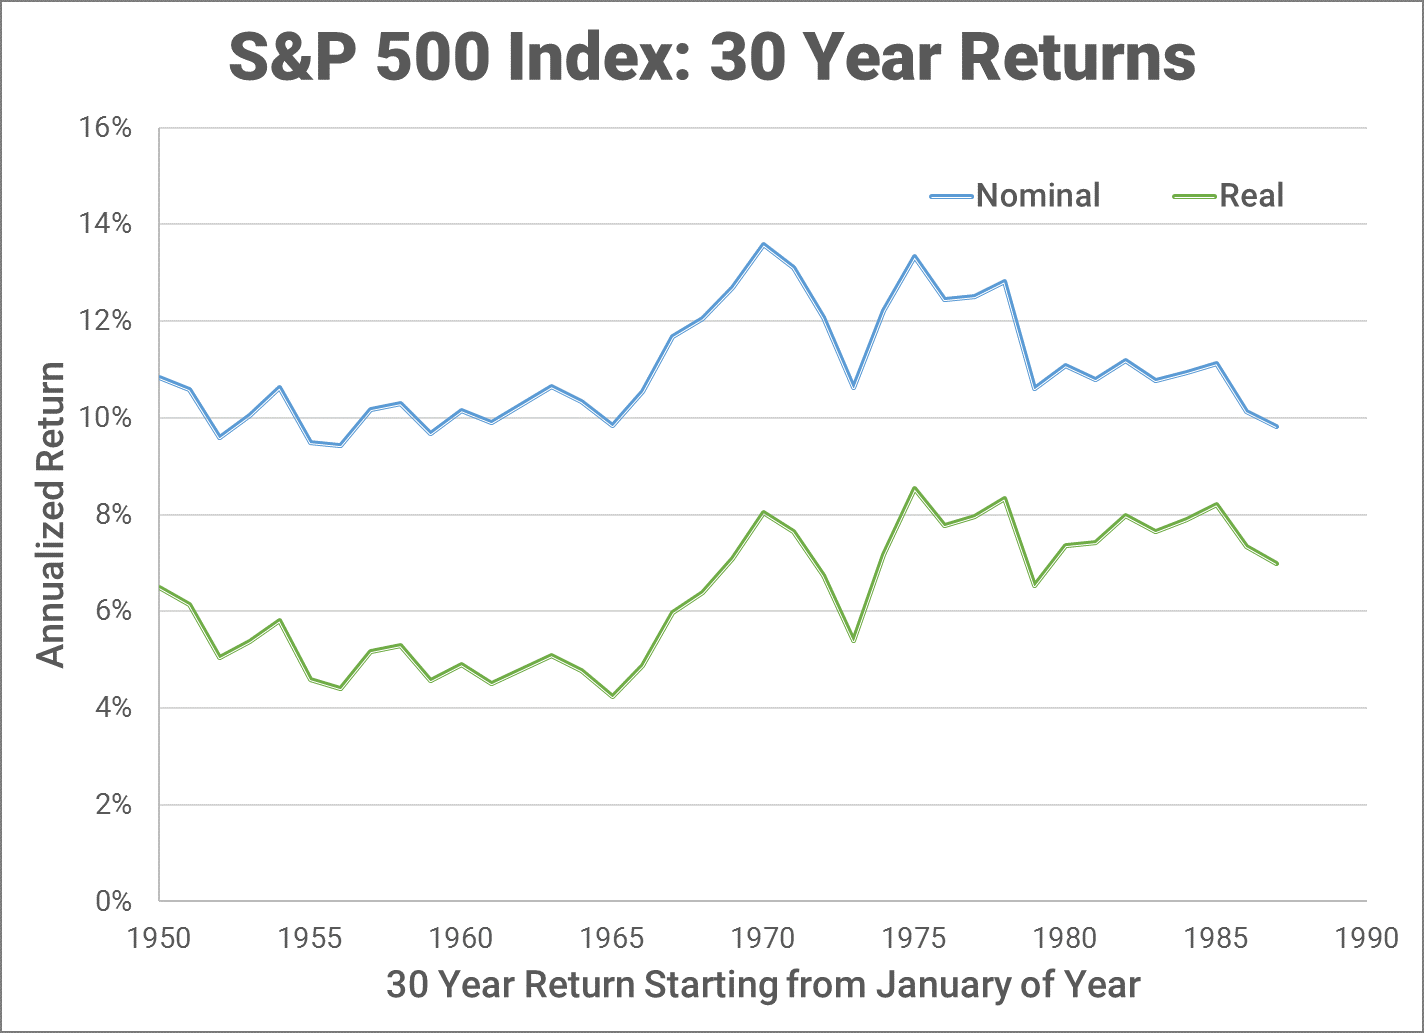 S&P 500 30 year returns